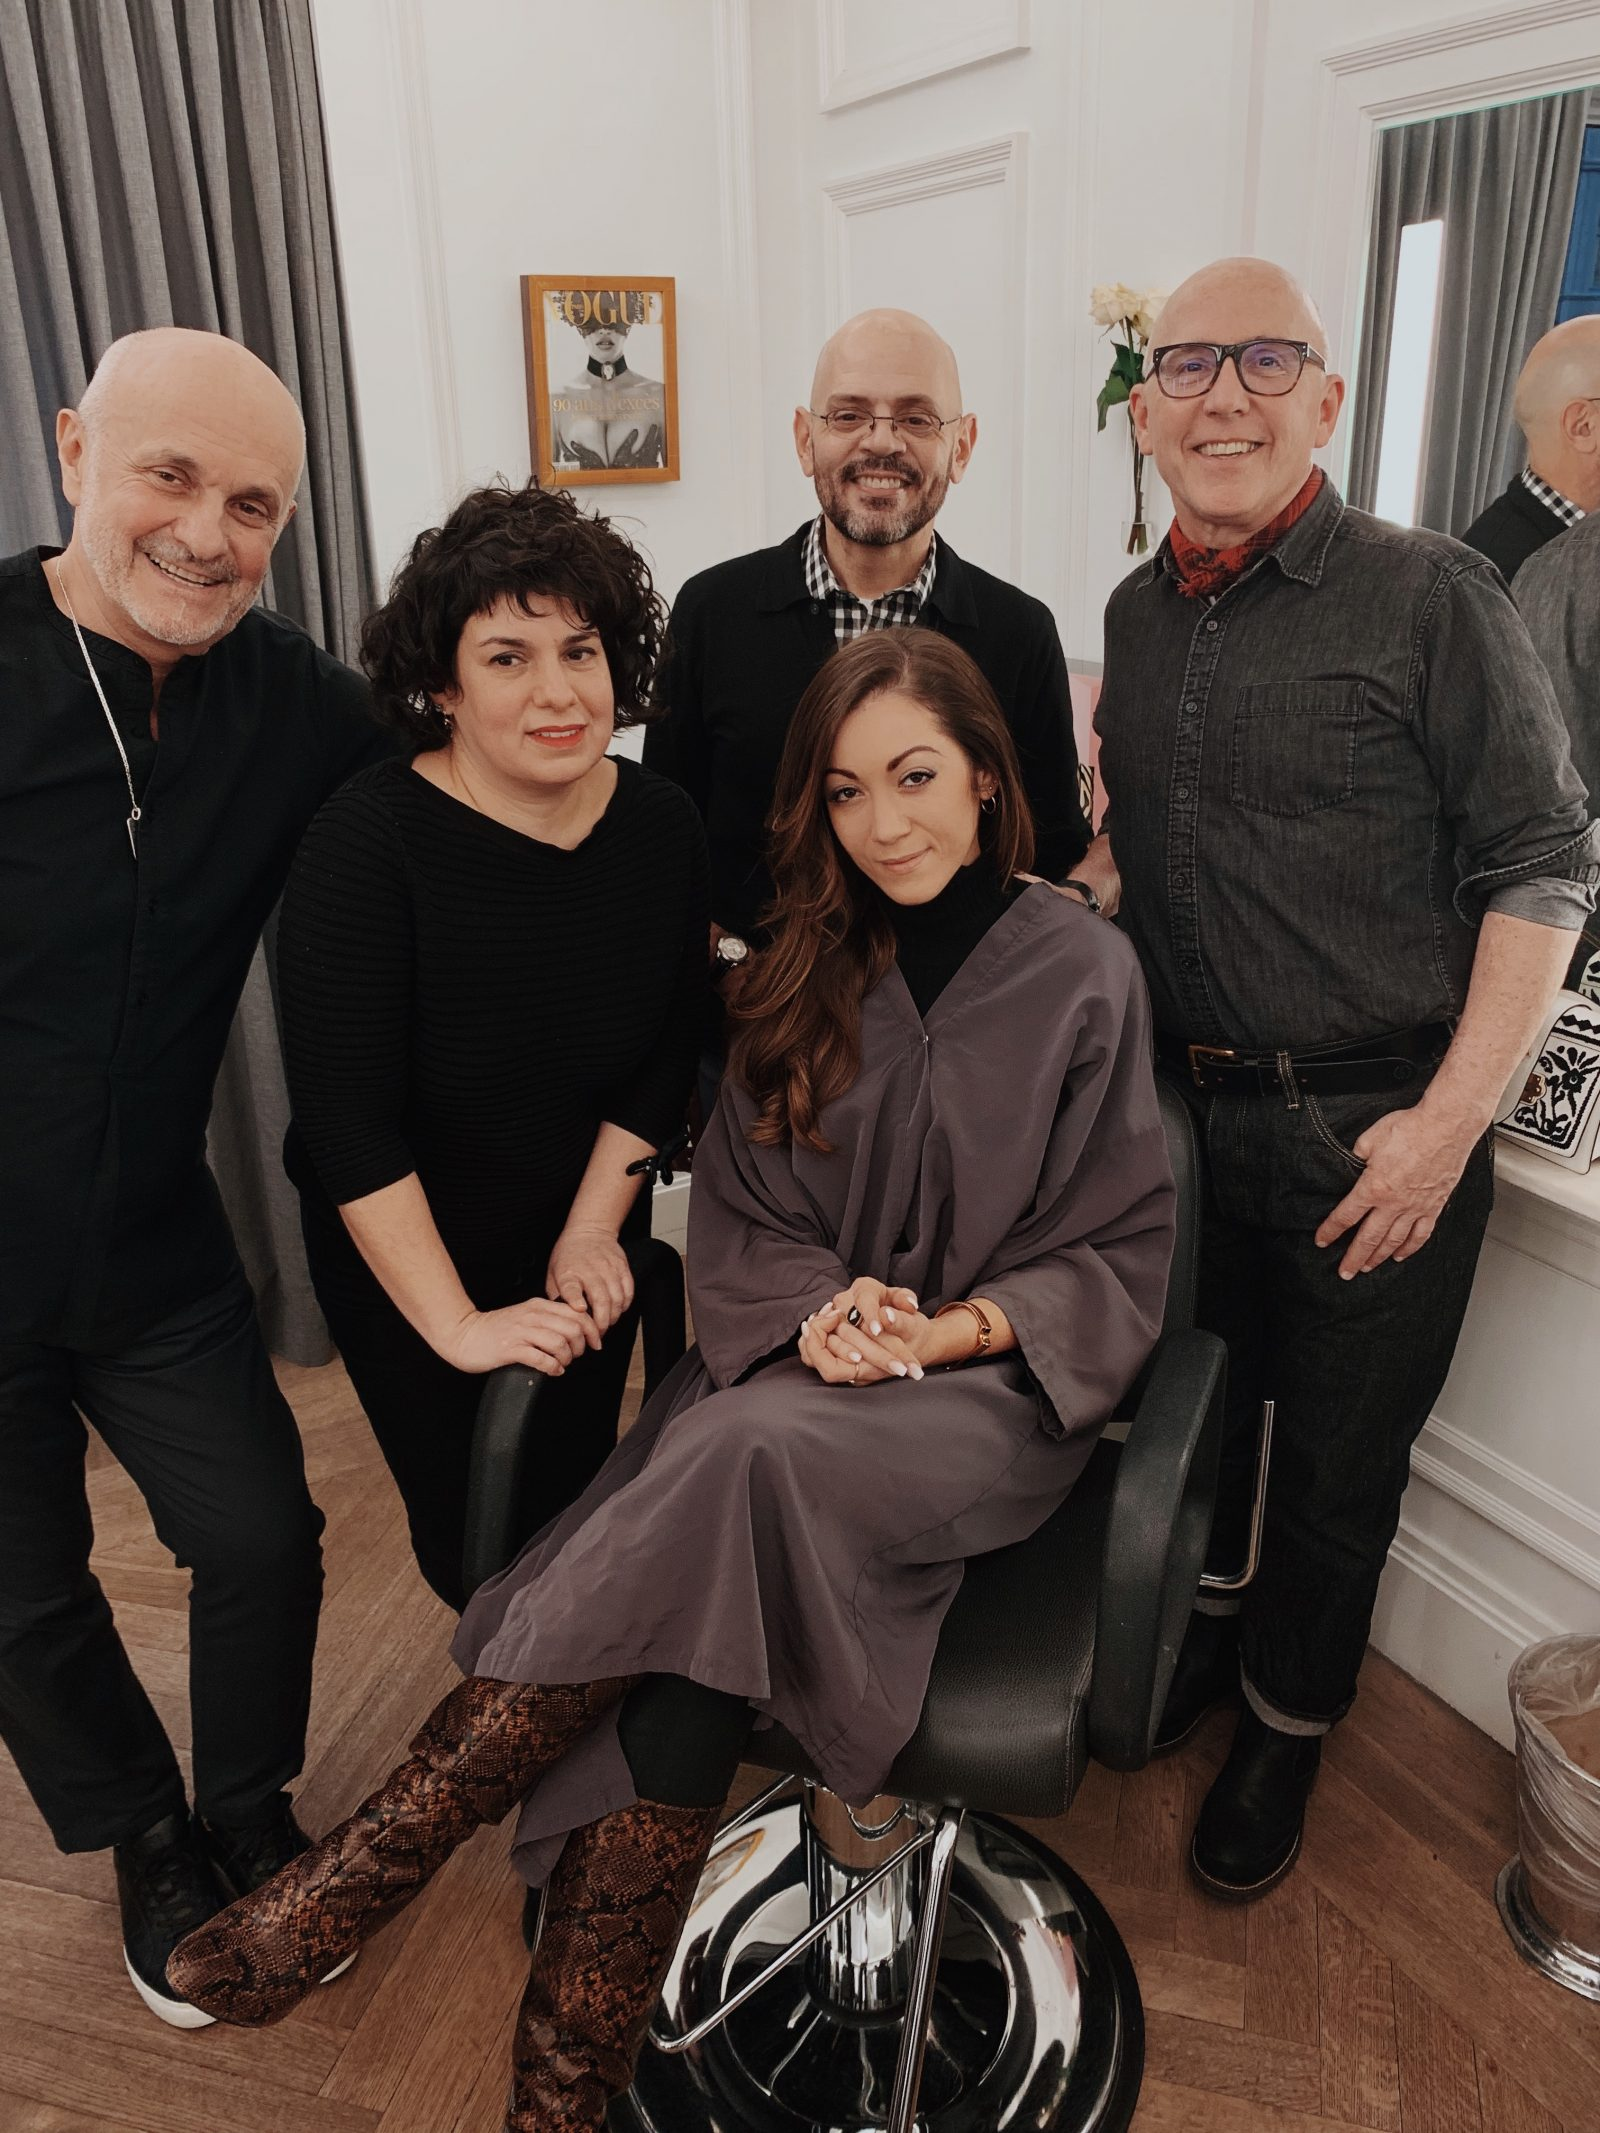 Yves Durif Salon | Part 2 - Cut, Color, and Makeup Details